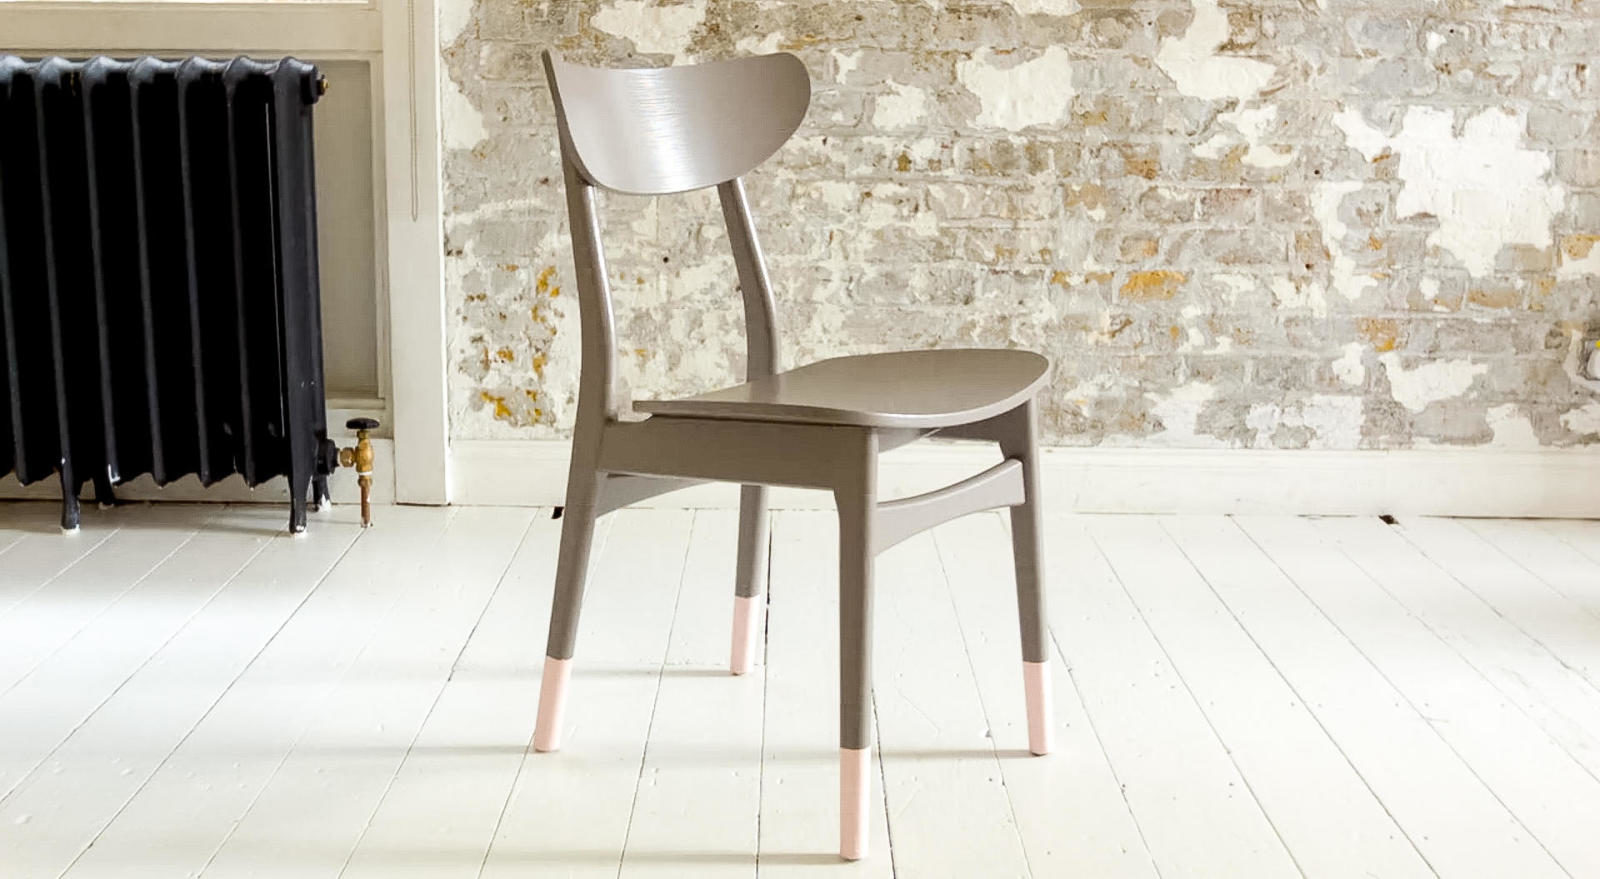 Dipped-Wooden-Chair-16